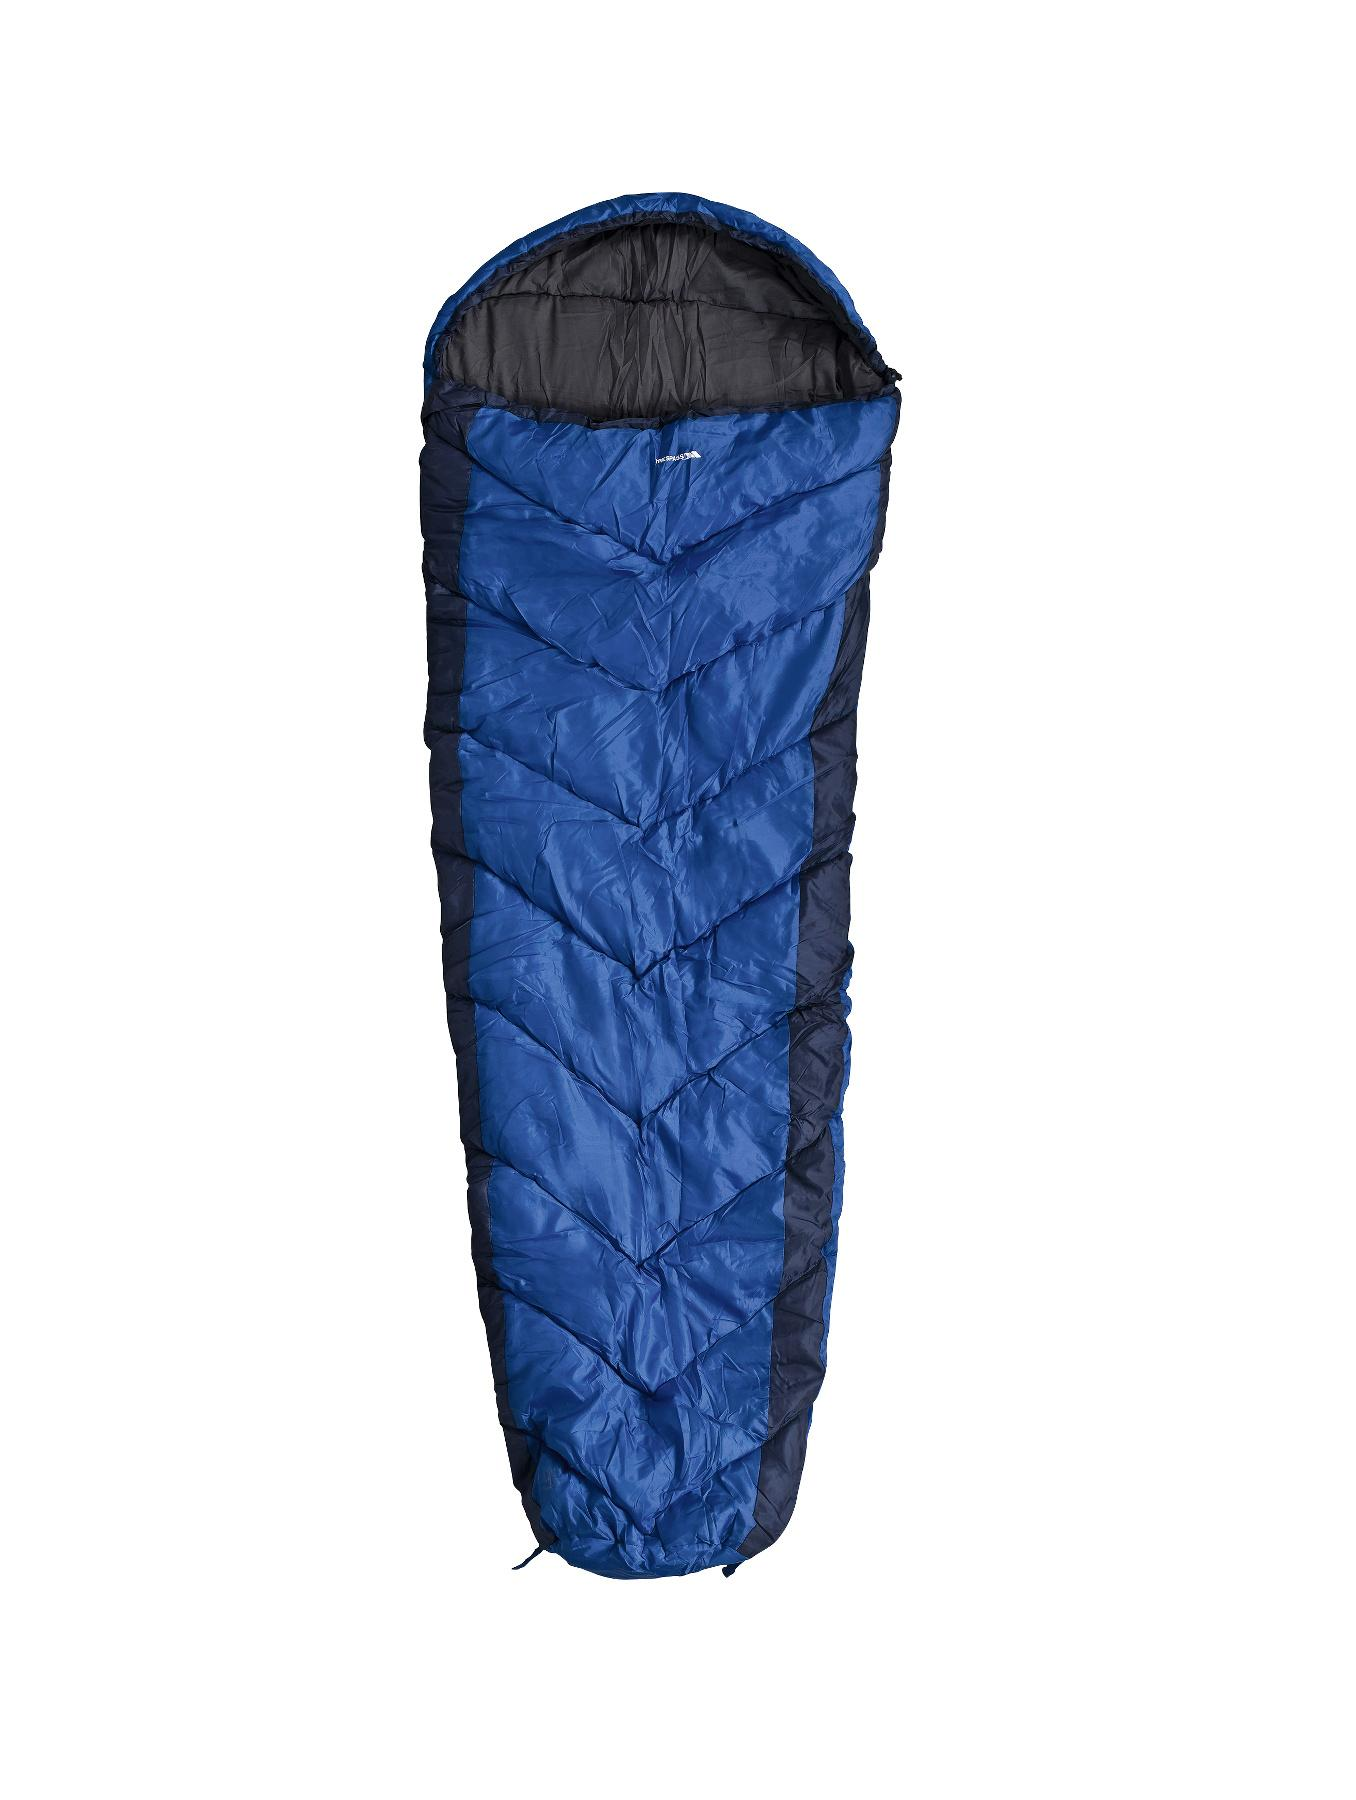 Trespass Doze 3-Season Sleeping Bag